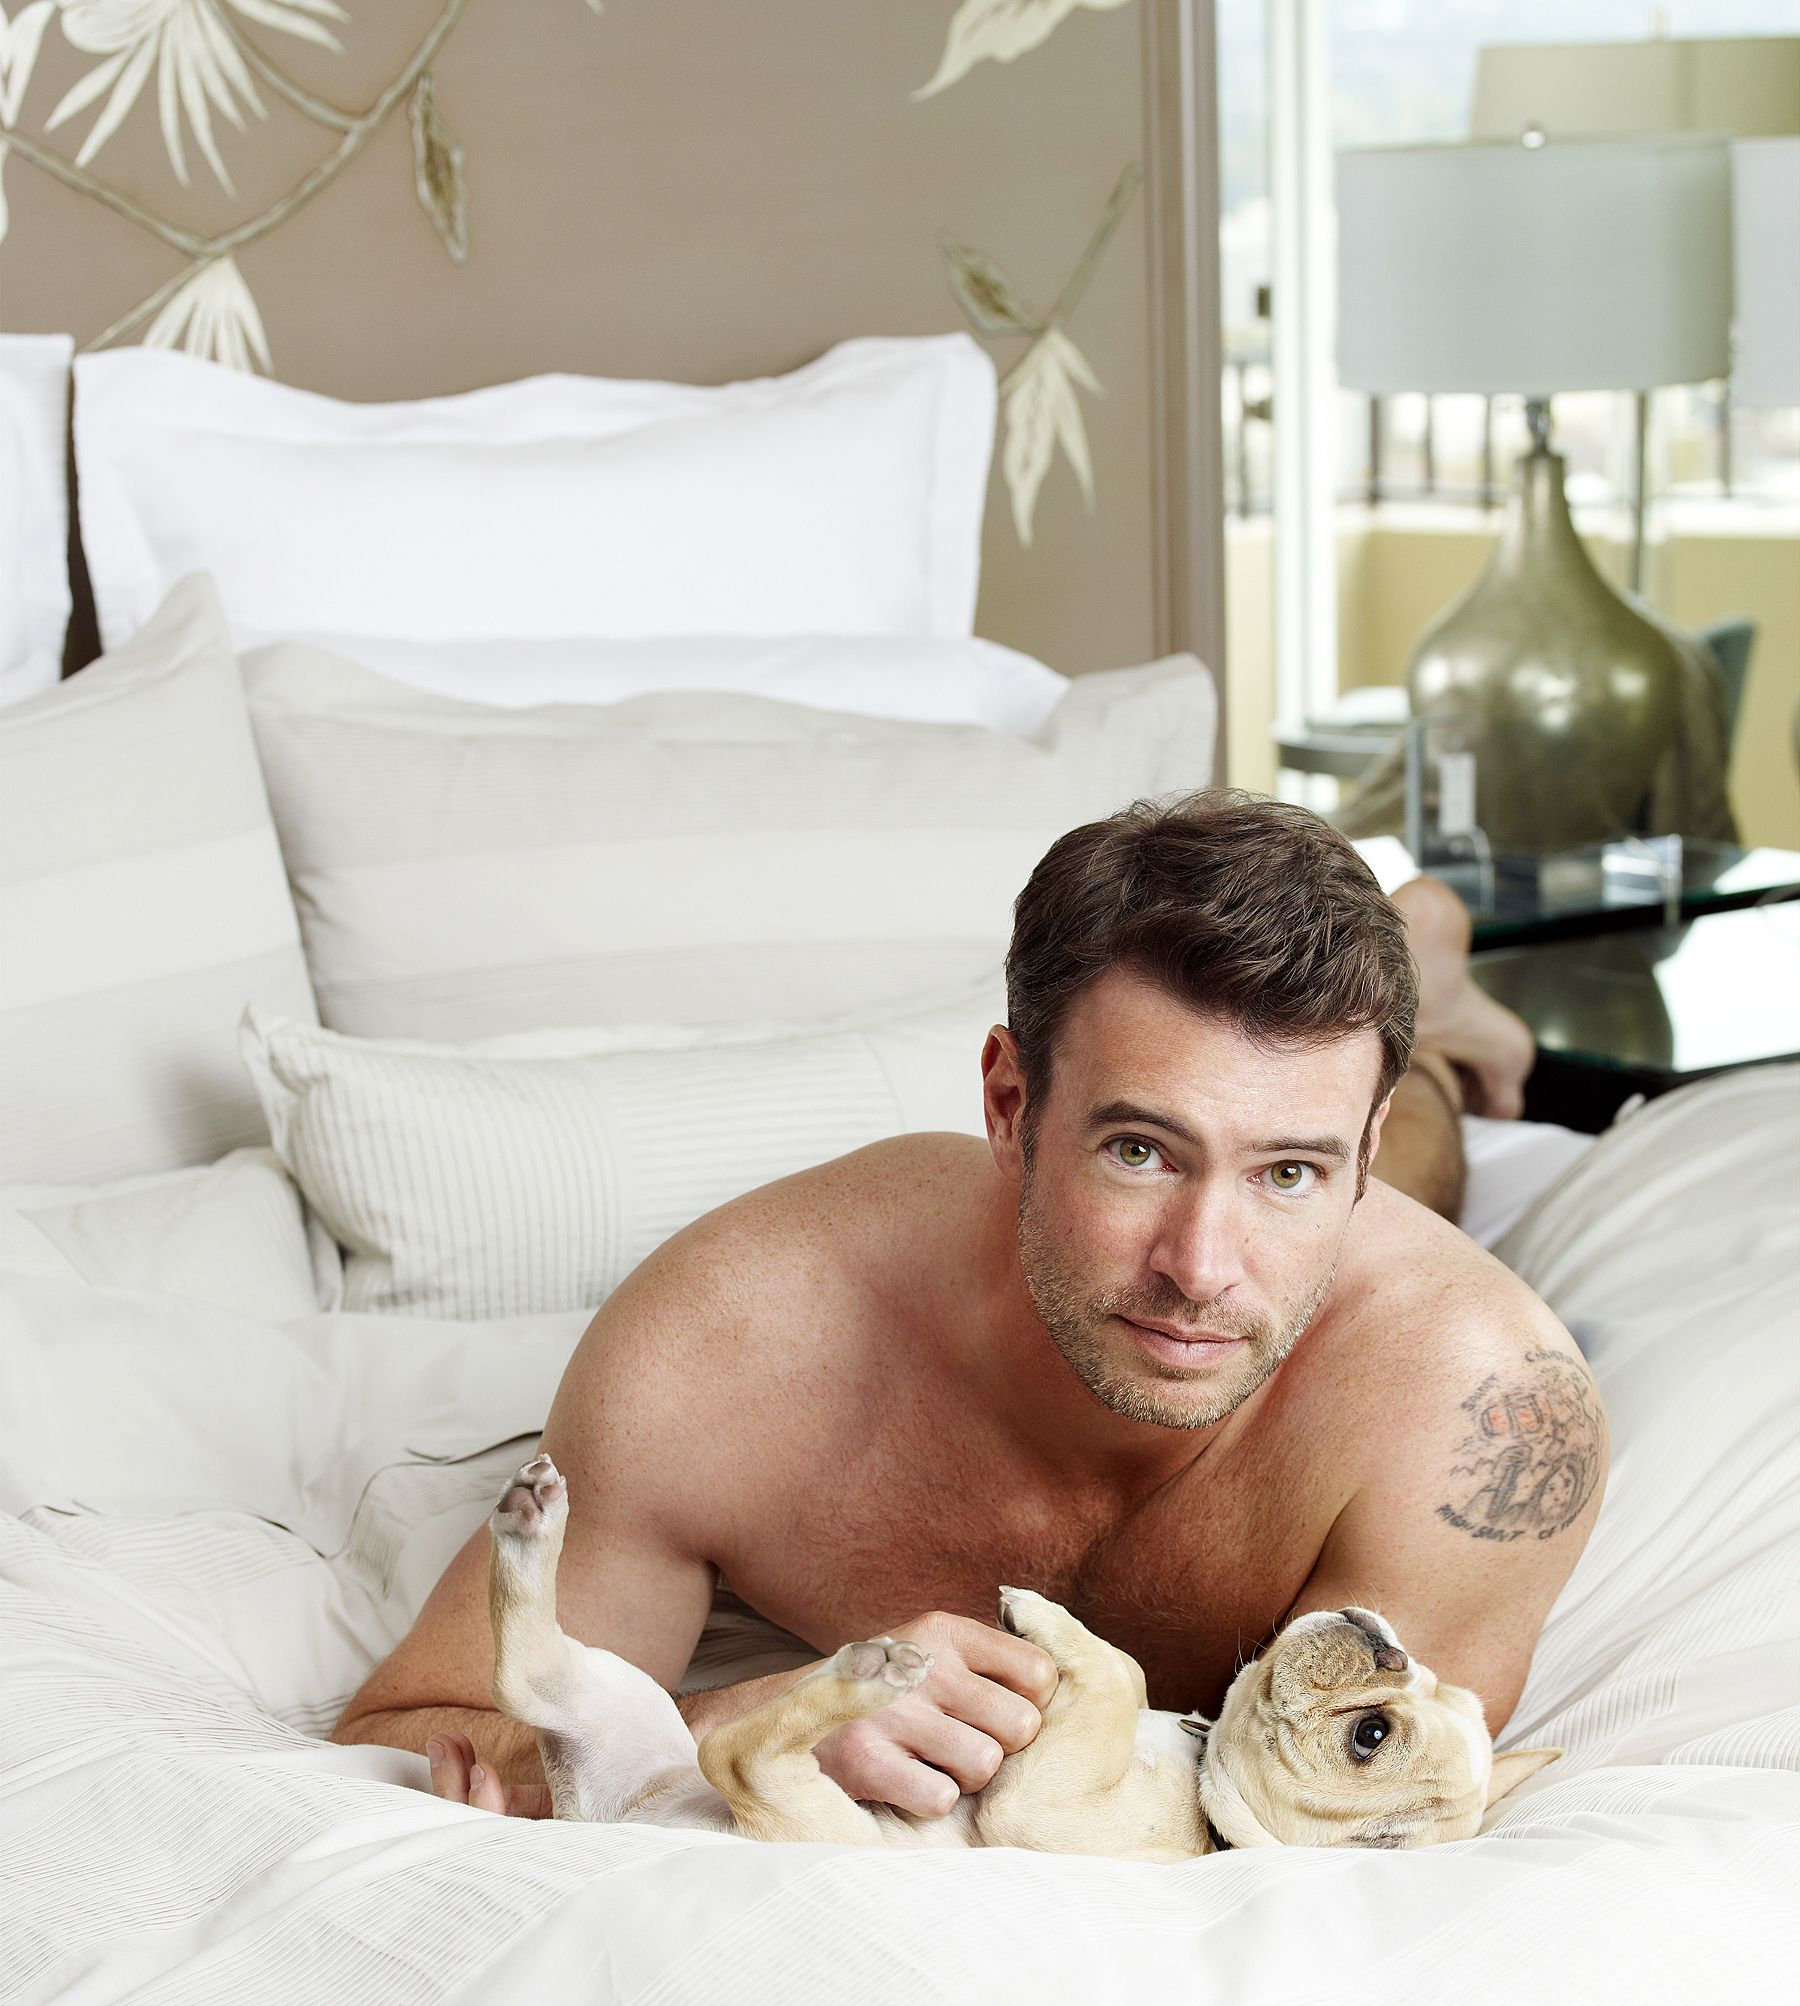 Scott Foley Lies Shirtless in Bed With Puppies for Charisma Photos ...